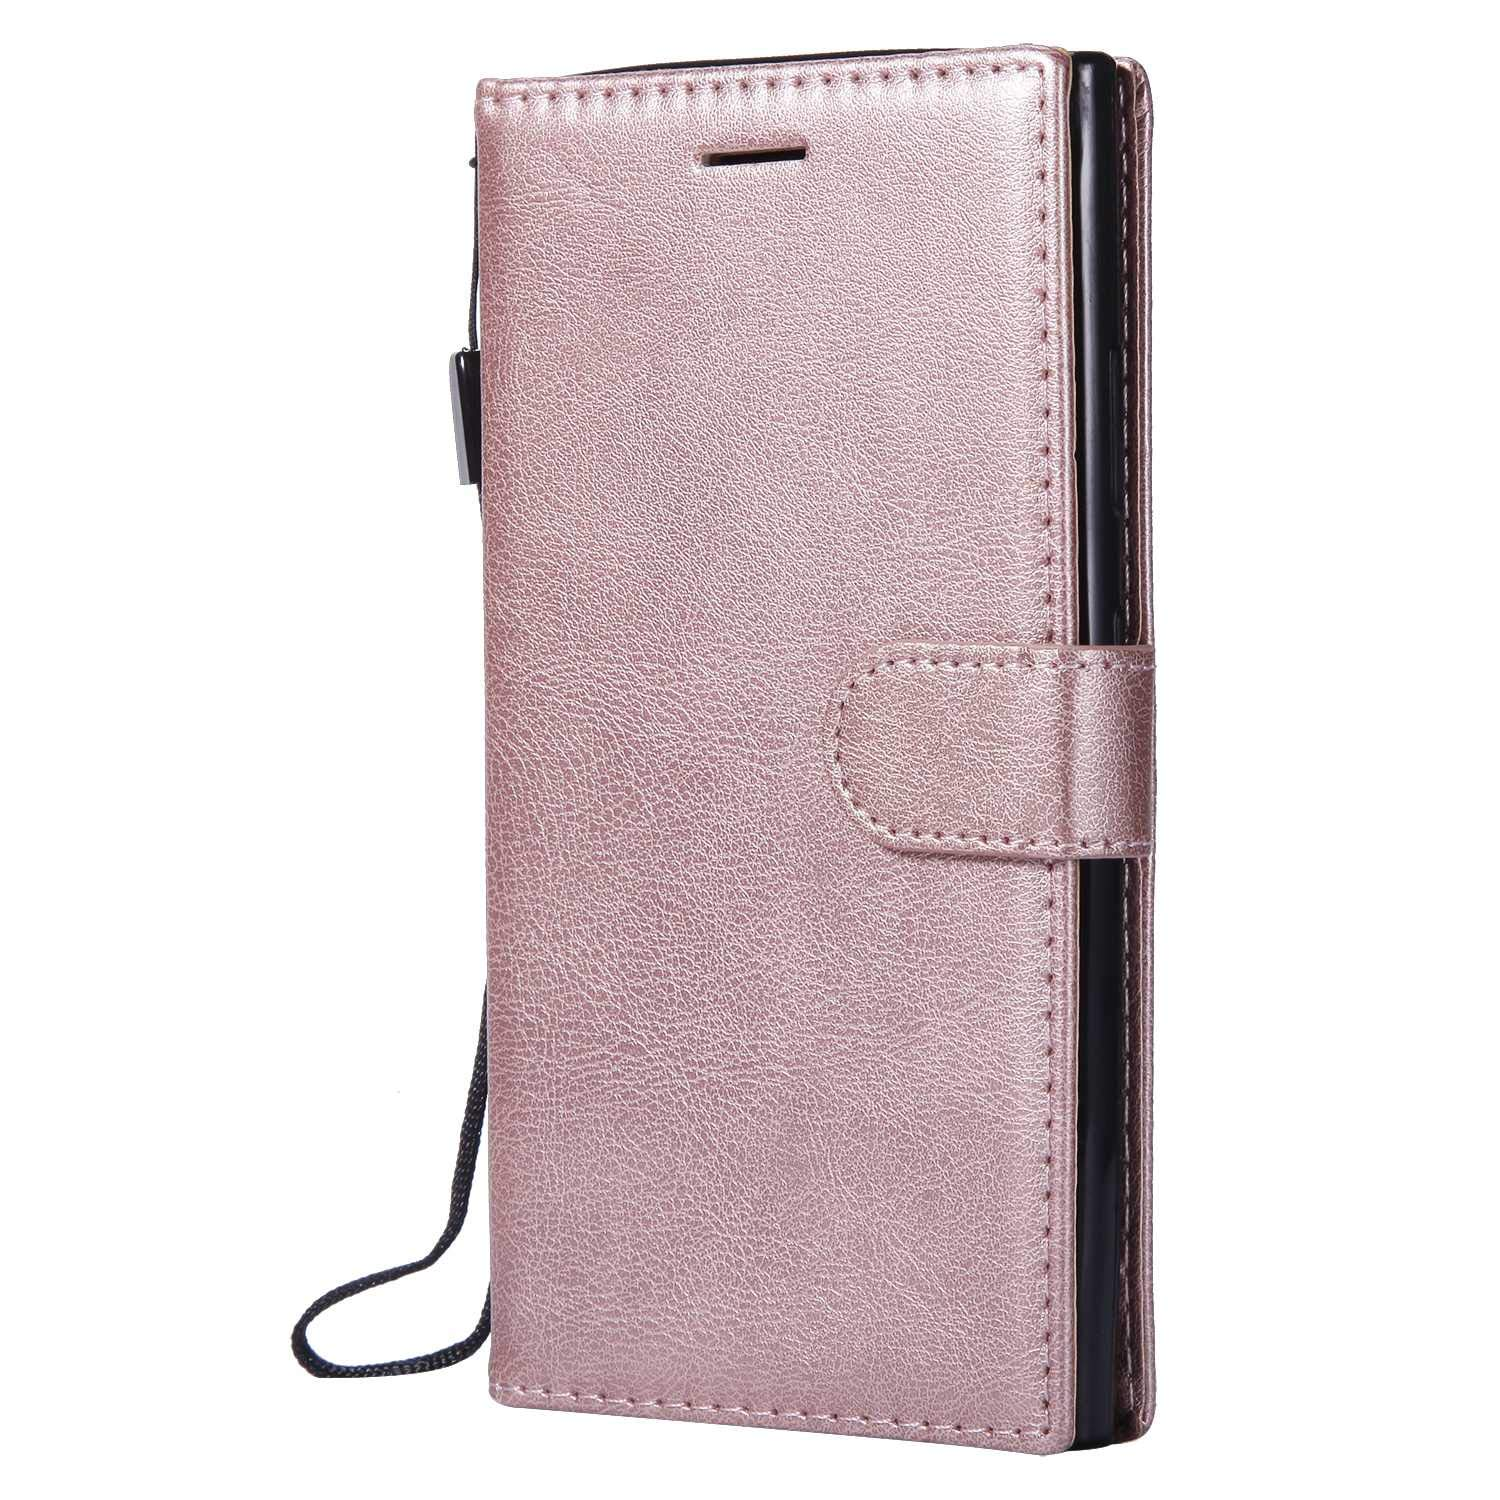 Sony Xperia L2 Wallet Case, CUSKING Premium Leather Cover with Silicone Inner Case for Sony Xperia L2 [Card Holder] [Magnetic Closure] [Hand Strap] - Rose Gold by CUSKING (Image #1)